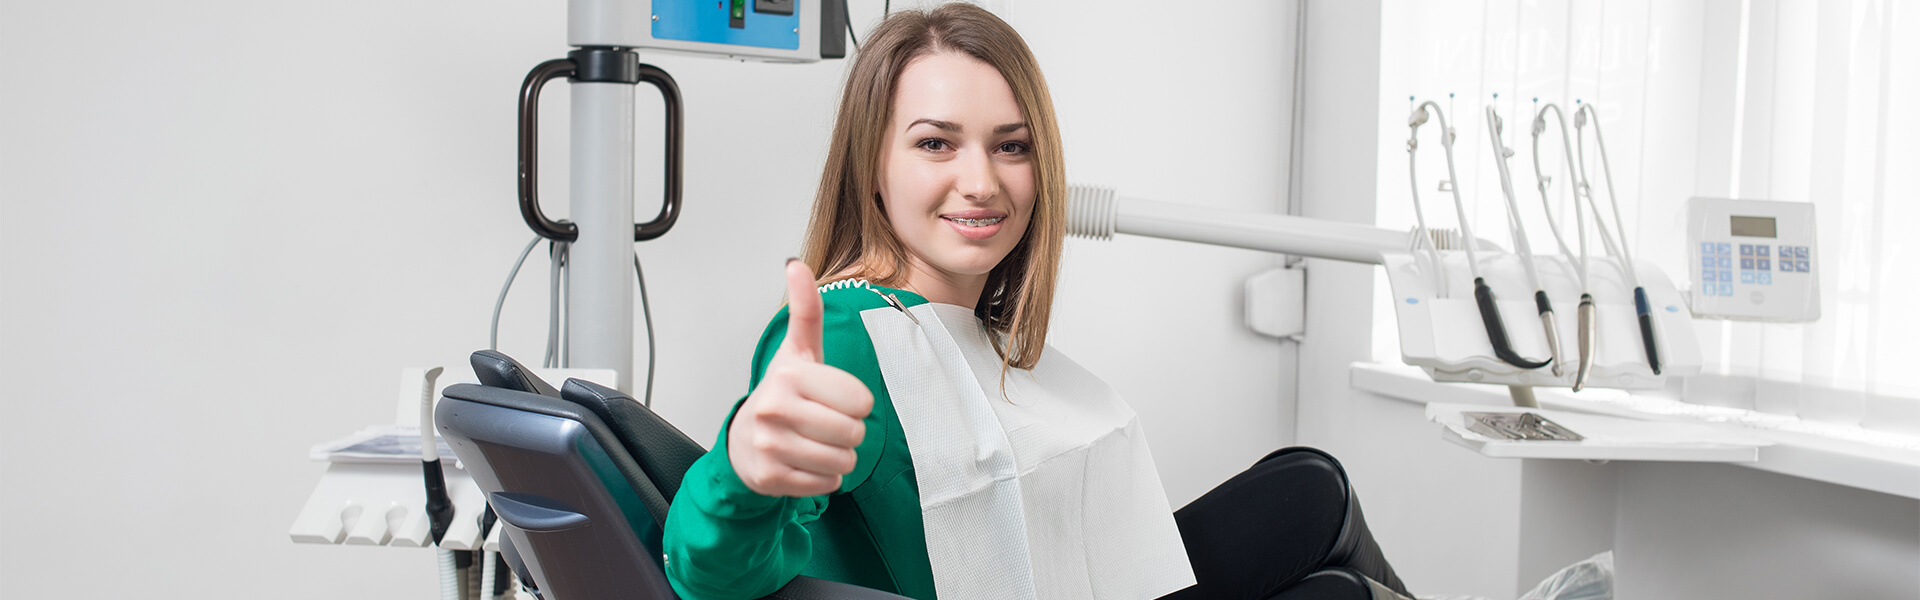 Dental Cleanings & Examinations Services In Jackson, MS